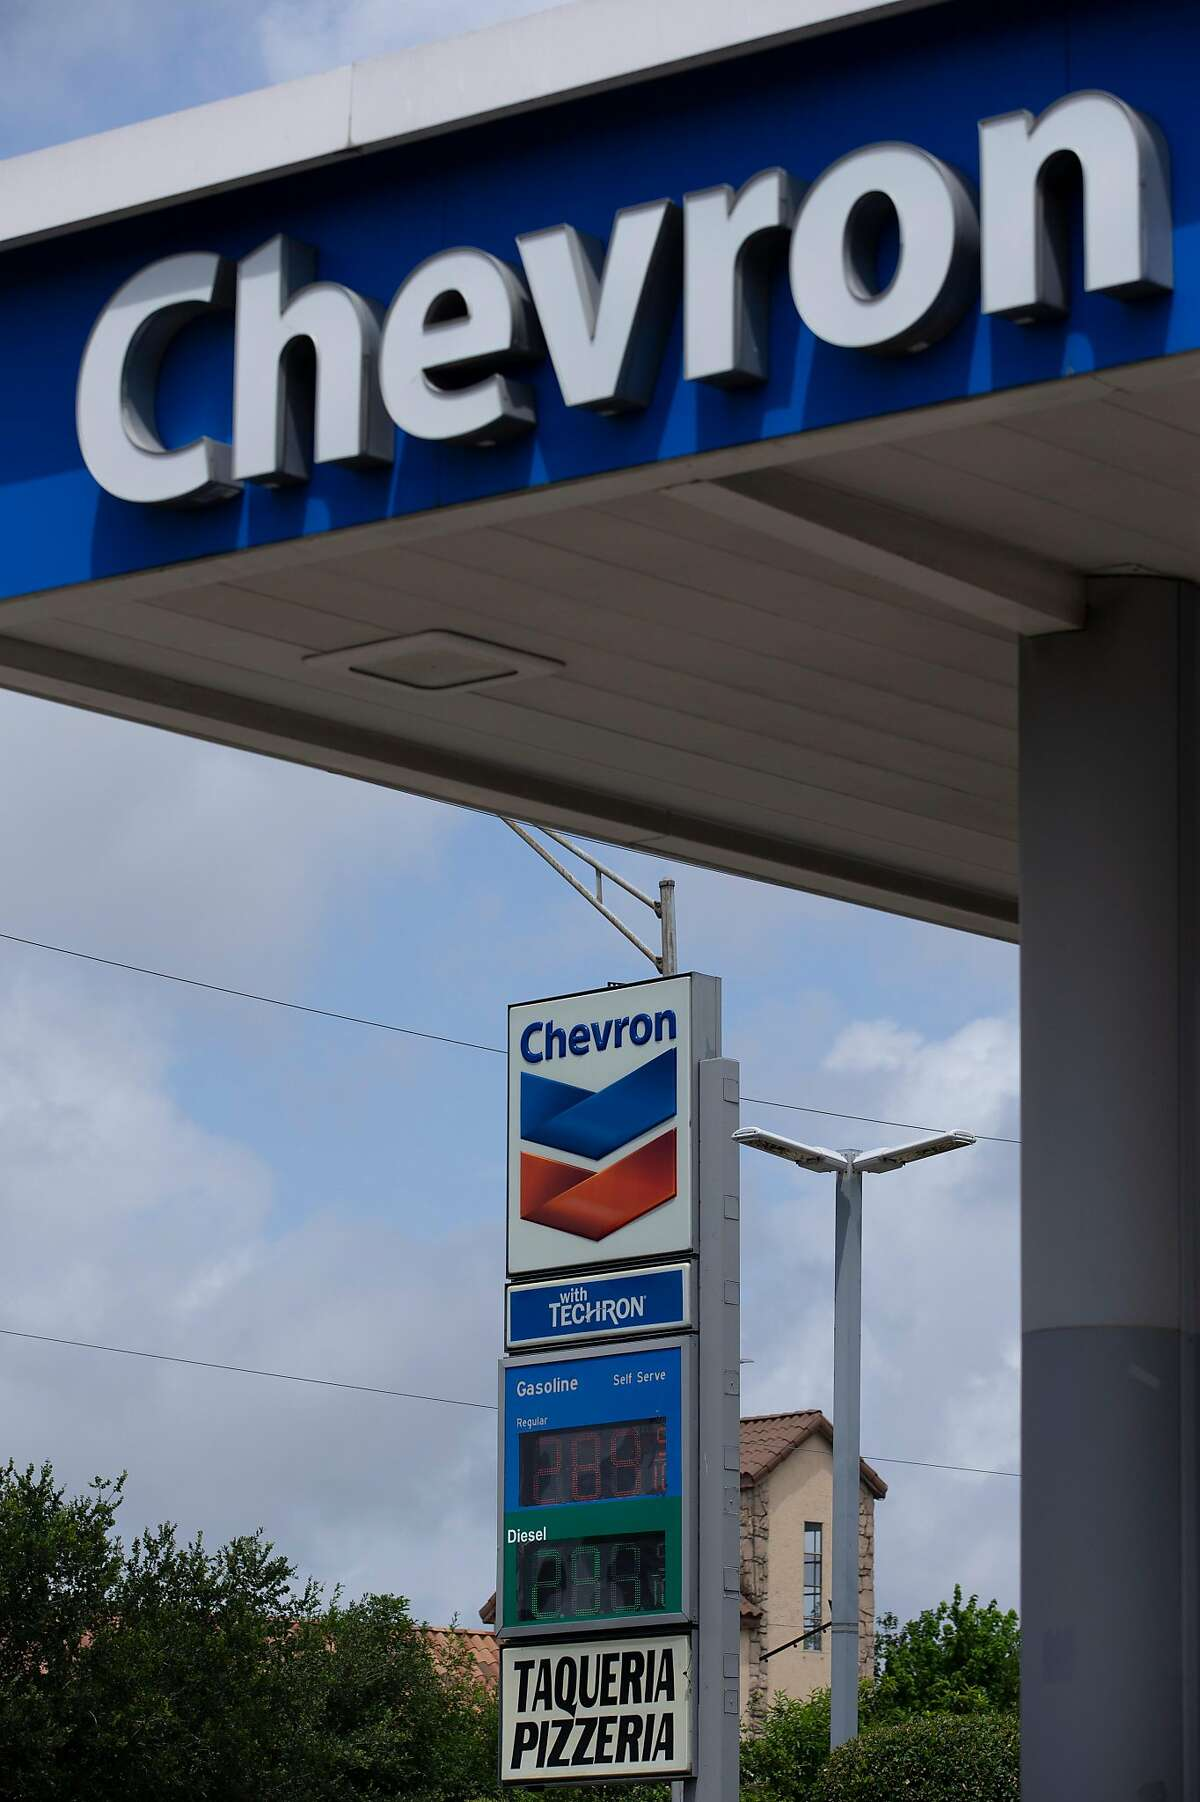 Chevron is one of five oil companies being sued for their role in emissions that increase global warming.